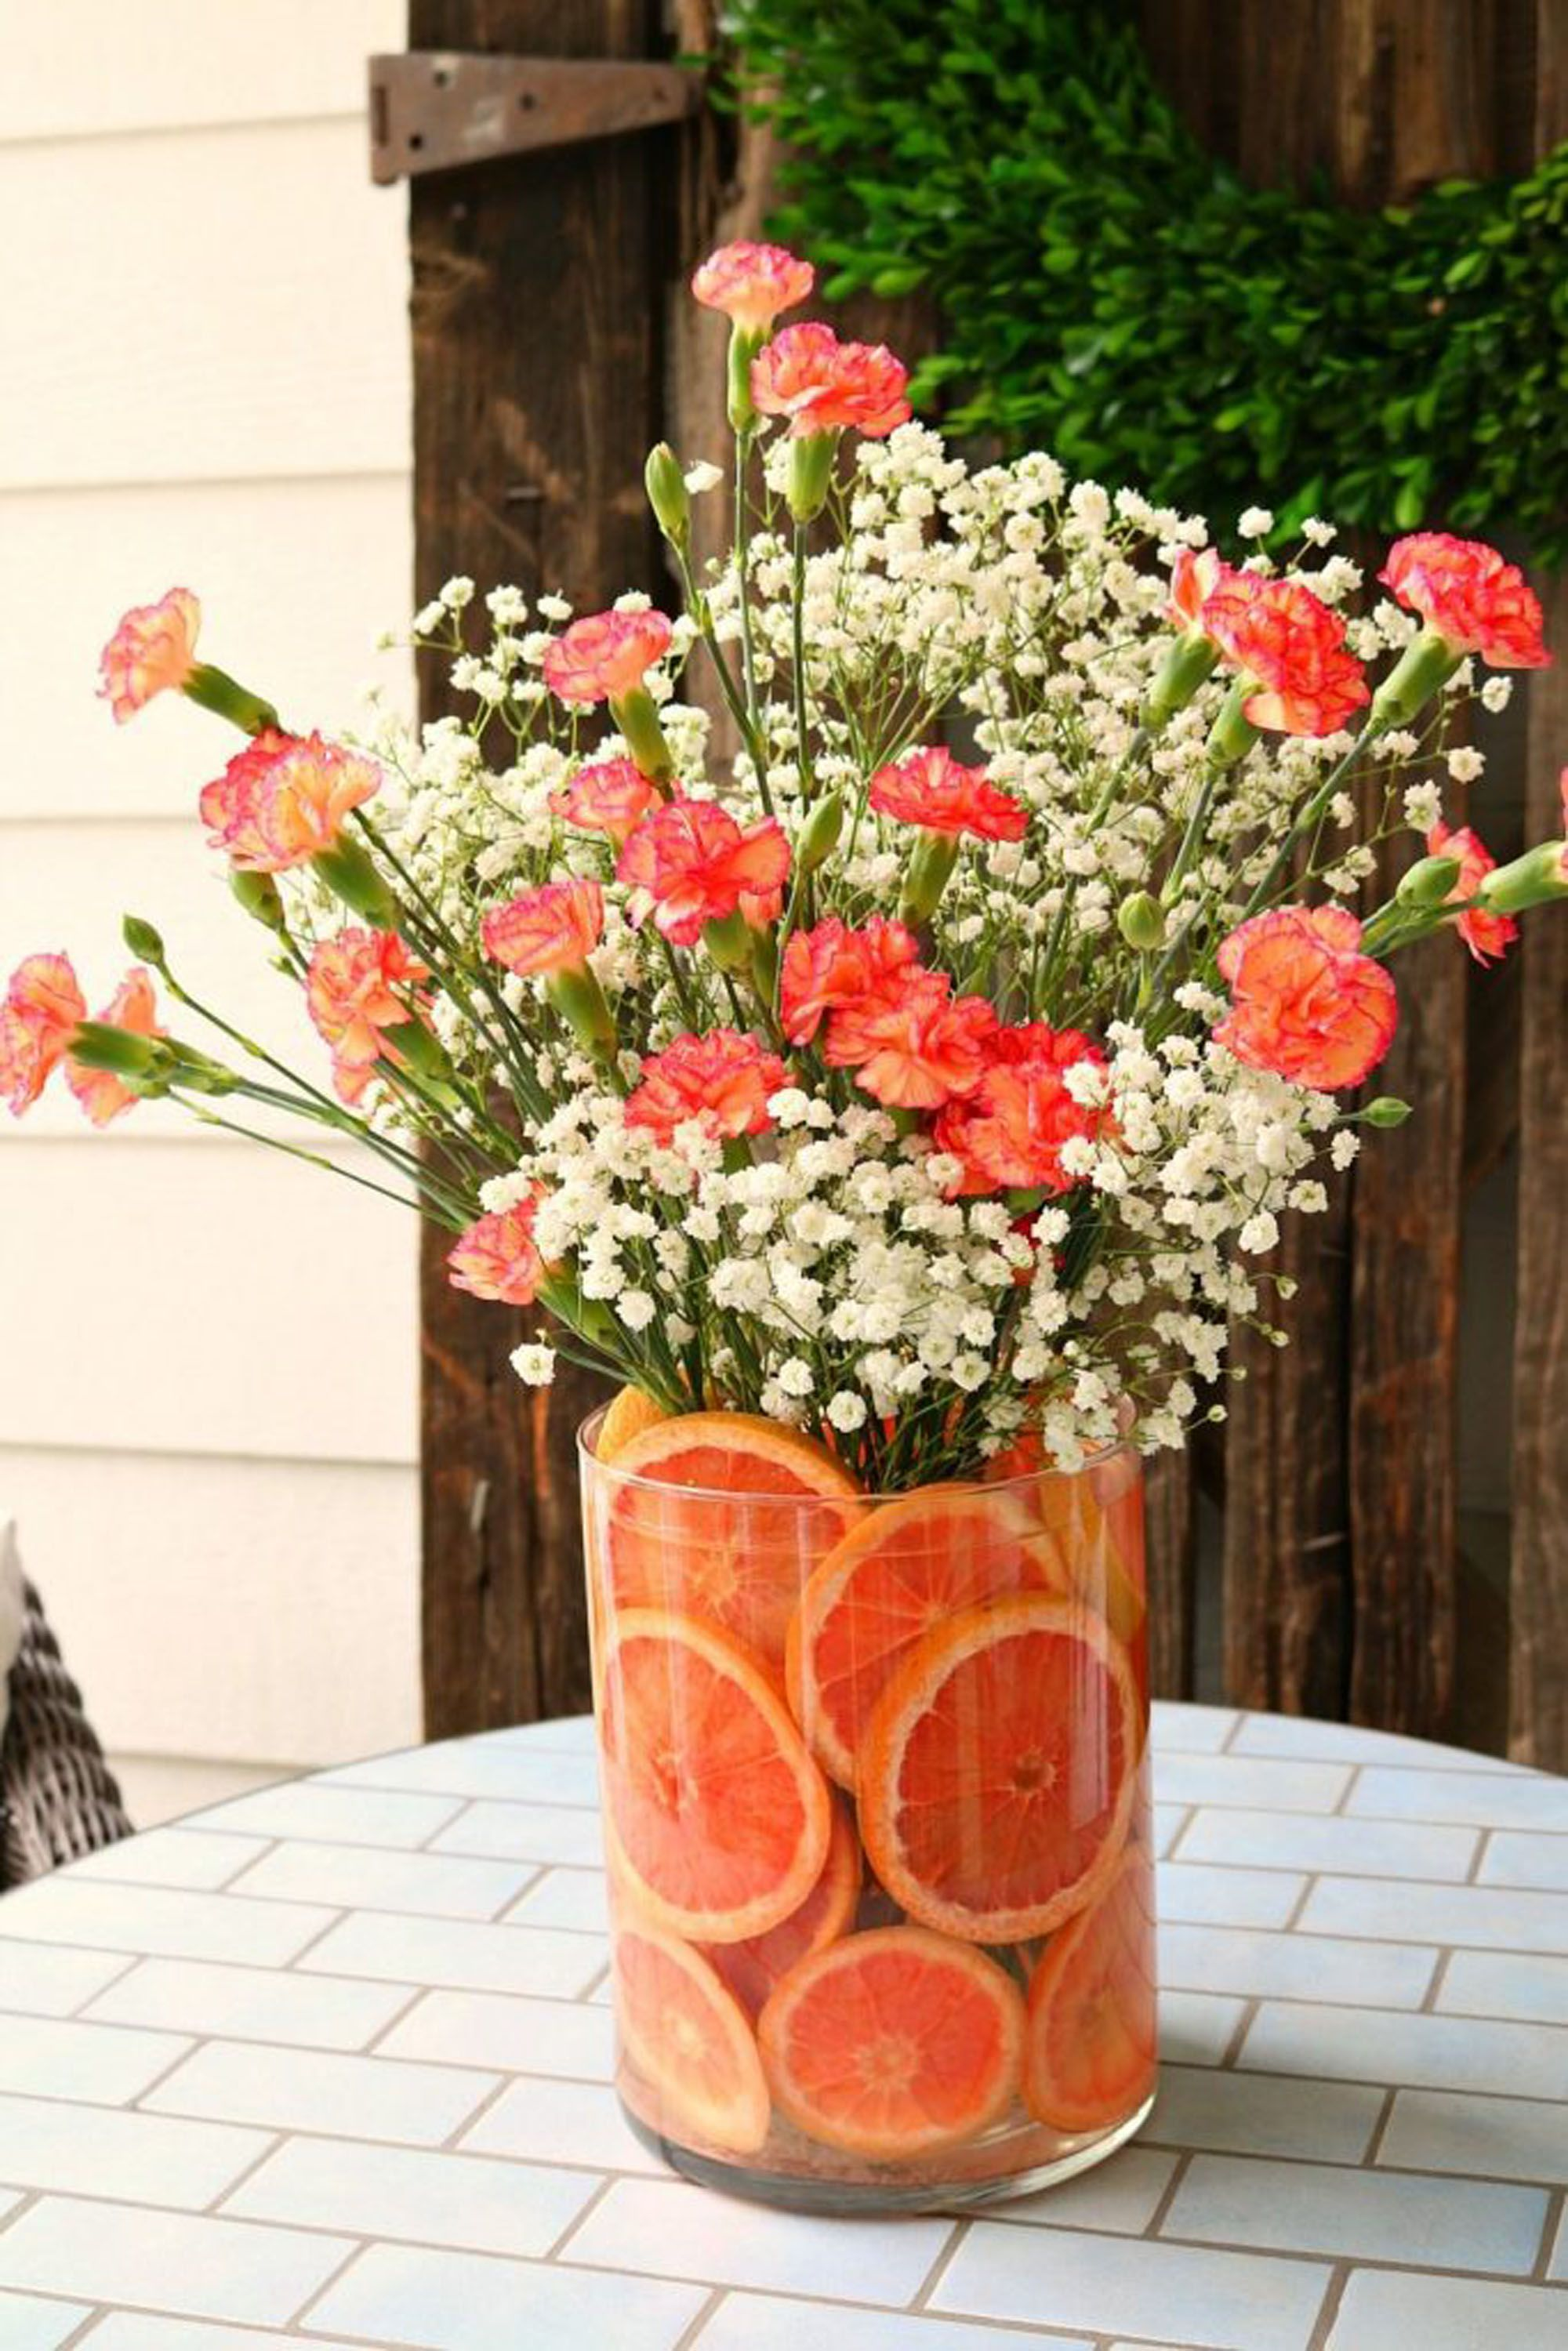 30 easy floral arrangement ideas creative diy flower arrangements mightylinksfo